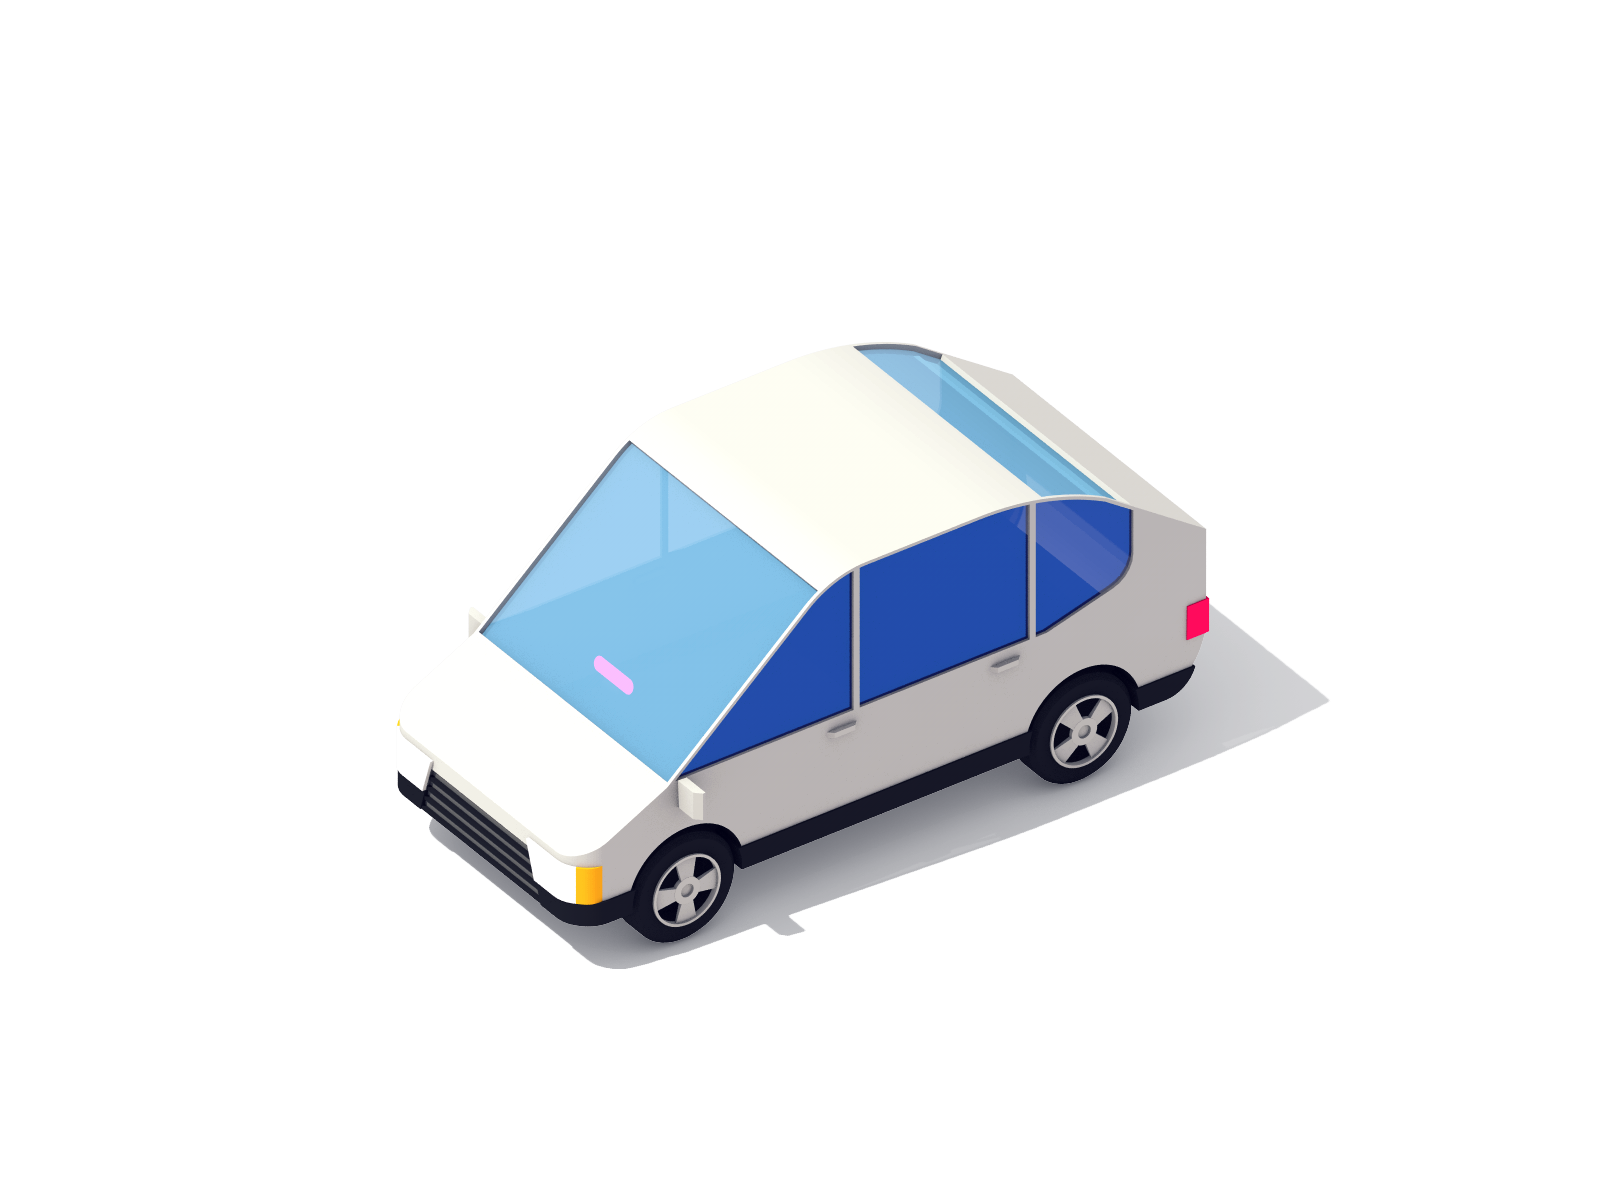 Lyft_Vehicle1_lyft.png